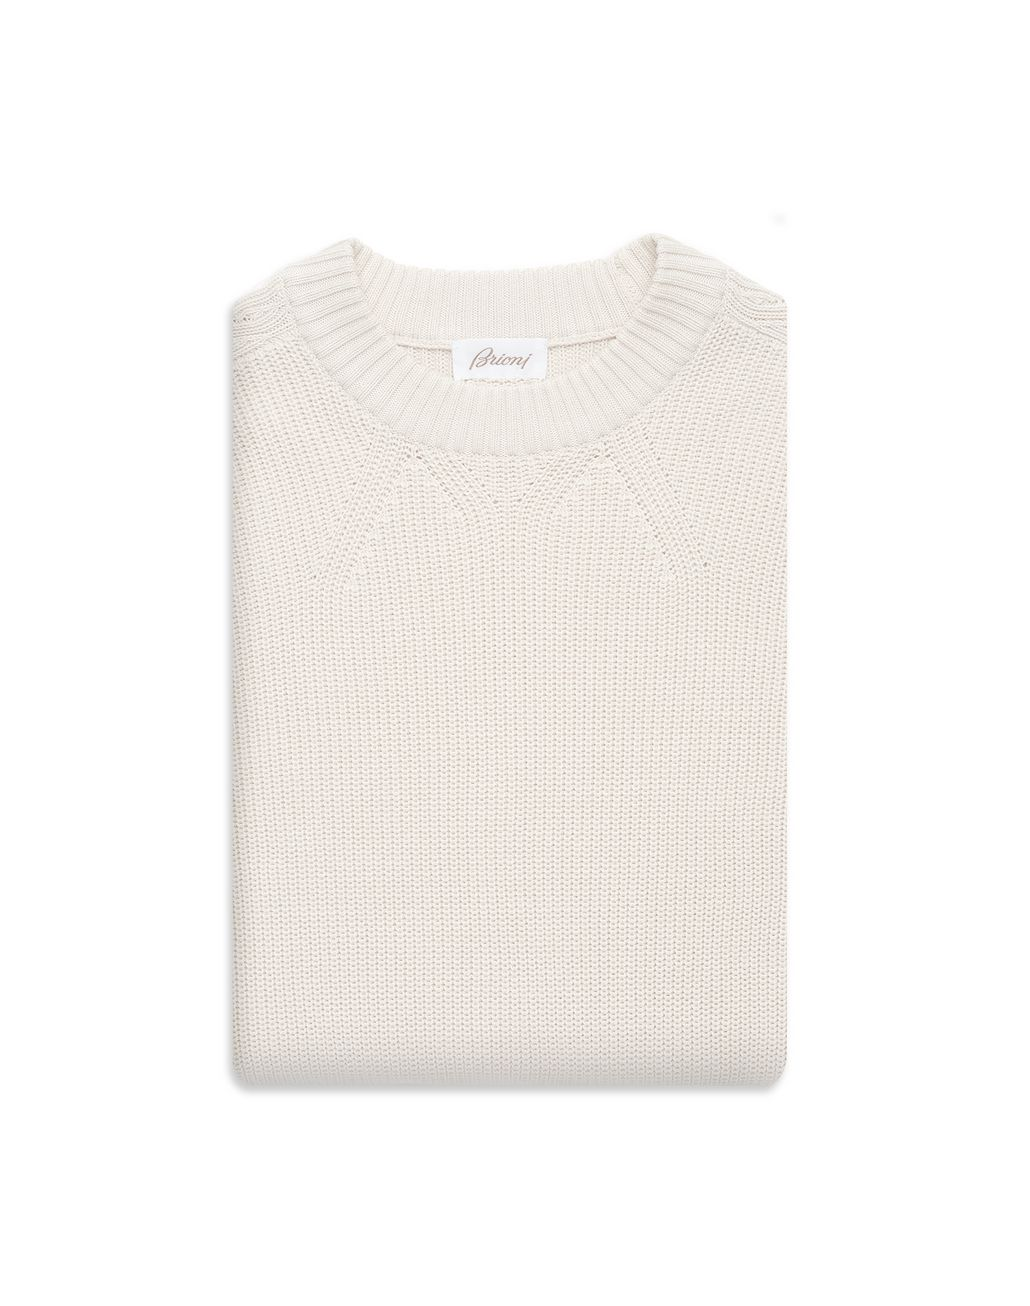 BRIONI Ivory Oversized Fit Sweater Knitwear Man e